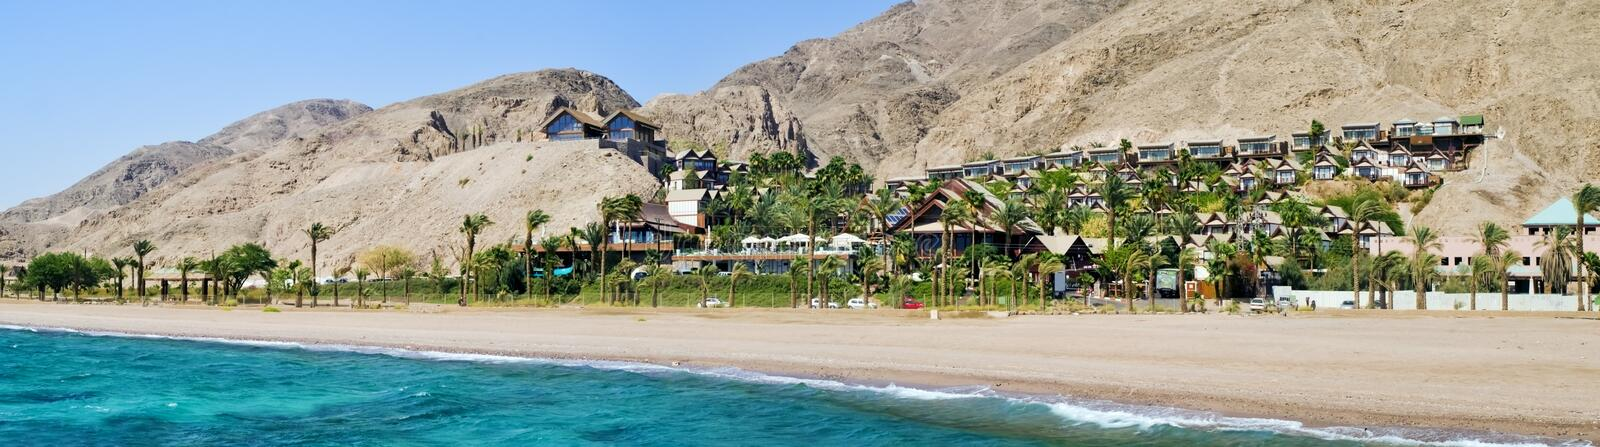 View on resort hotels in Eilat, Israel. Eilat is a famous city with beautiful beaches and resort hotels packed with thousands of vacationers and relaxing stock images